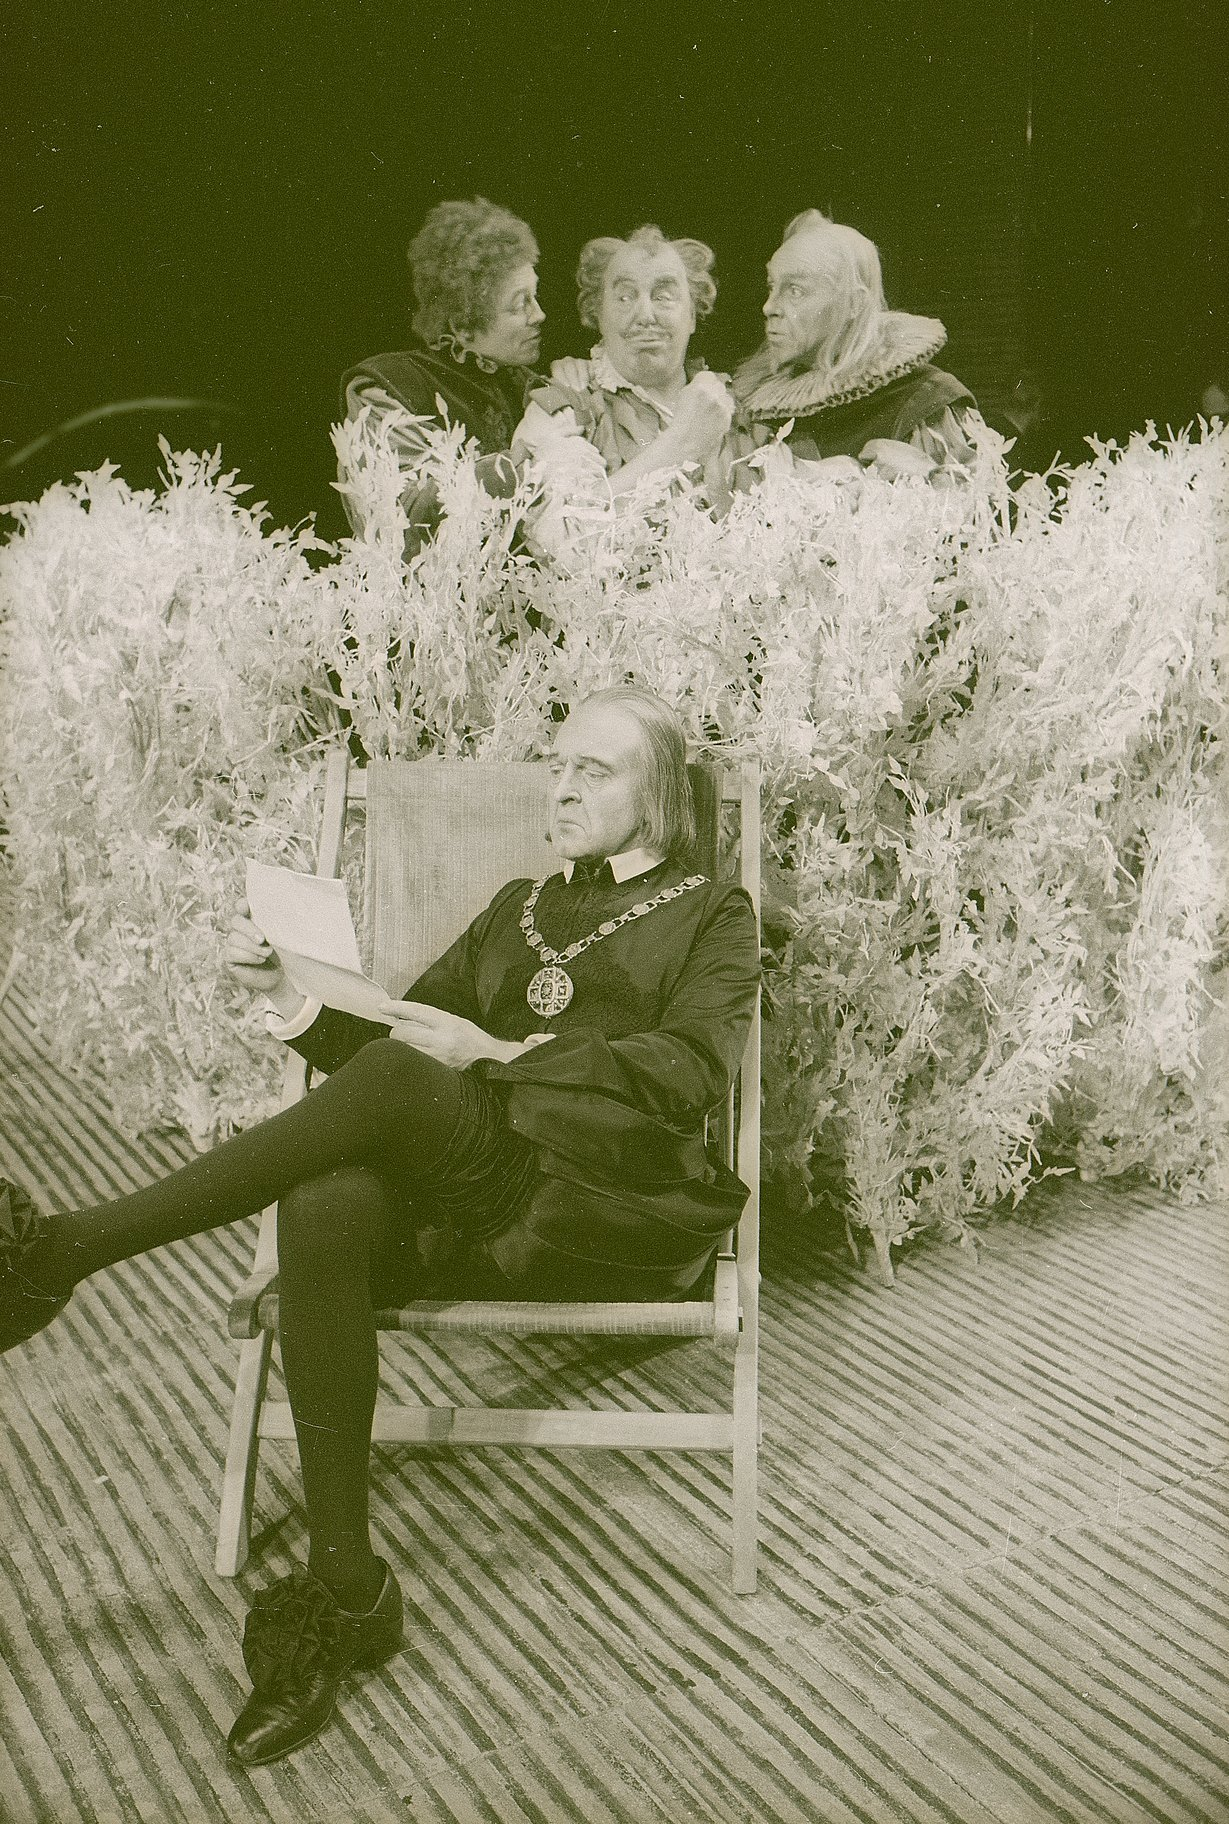 Malvolio sits cross legged in a garden chair reading a letter while dressed all in black with a large chain round his neck. He is watched by Sir Toby, Sir Andrew and Fabian who are hiding behind a large hedge in the 1969 production of Twelfth Night.